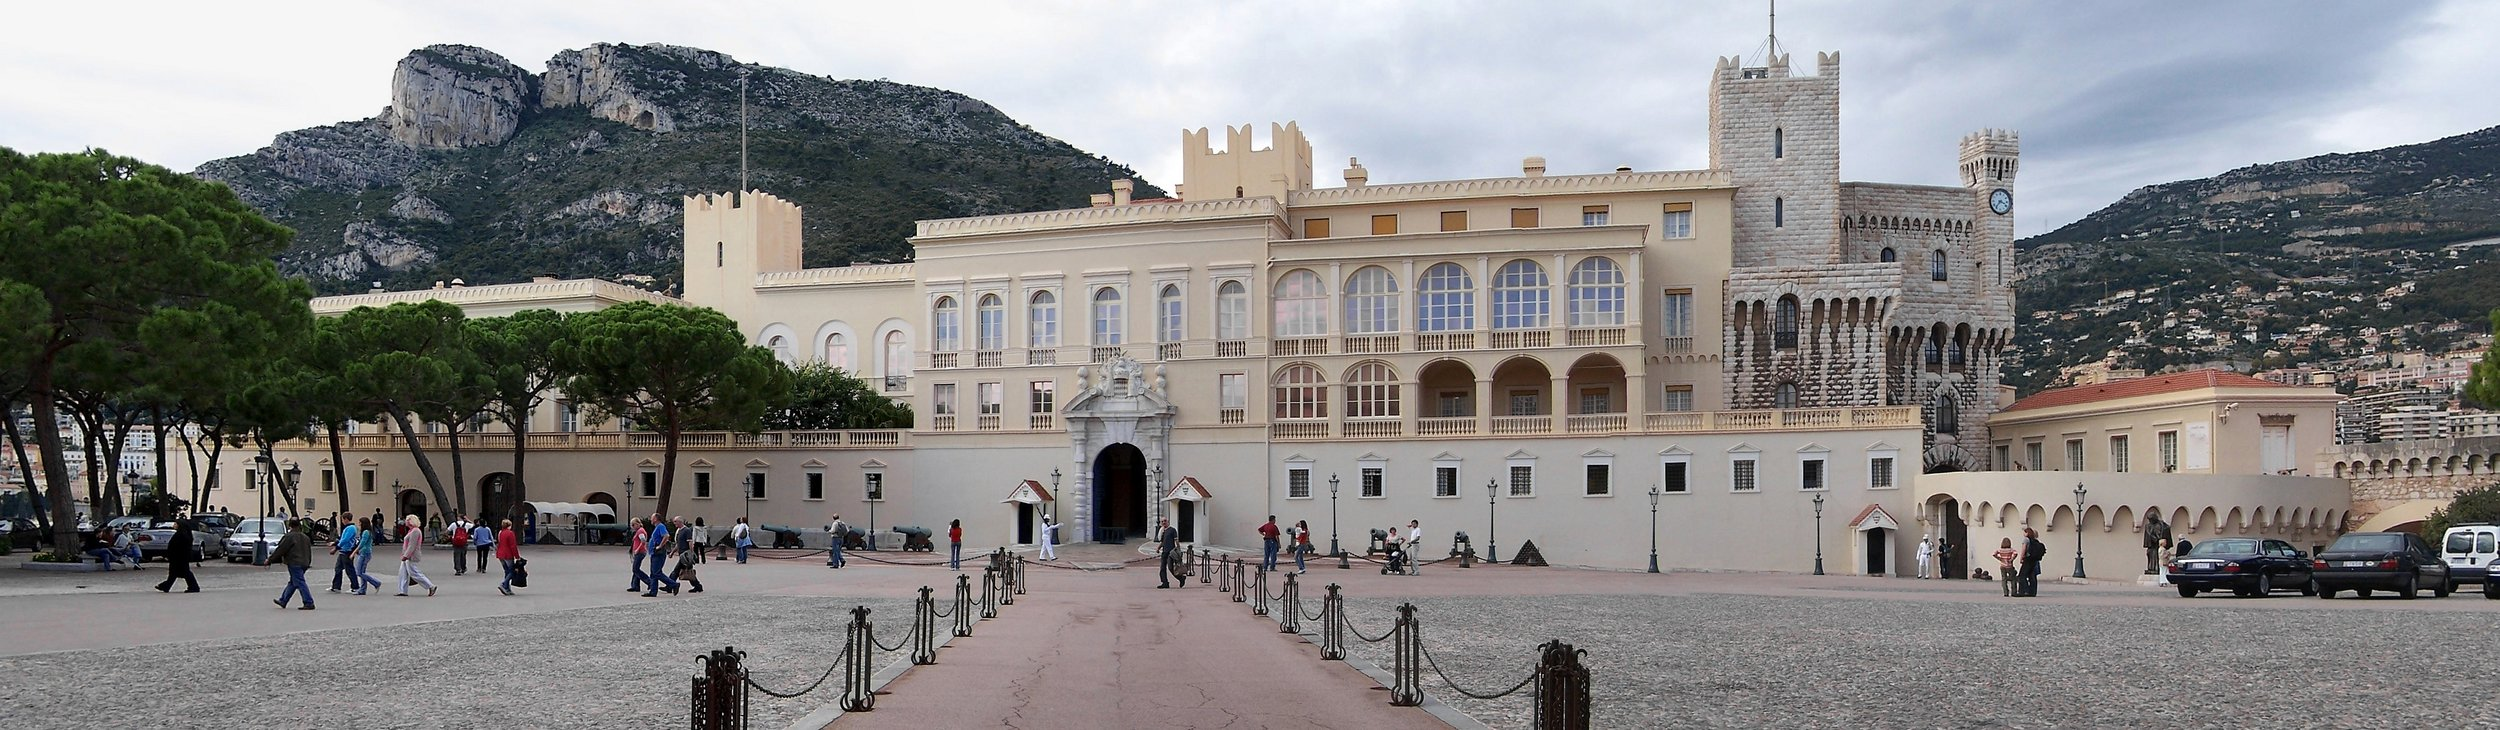 Prince's Palace of Monaco, released into public domain by    Berthold Werner